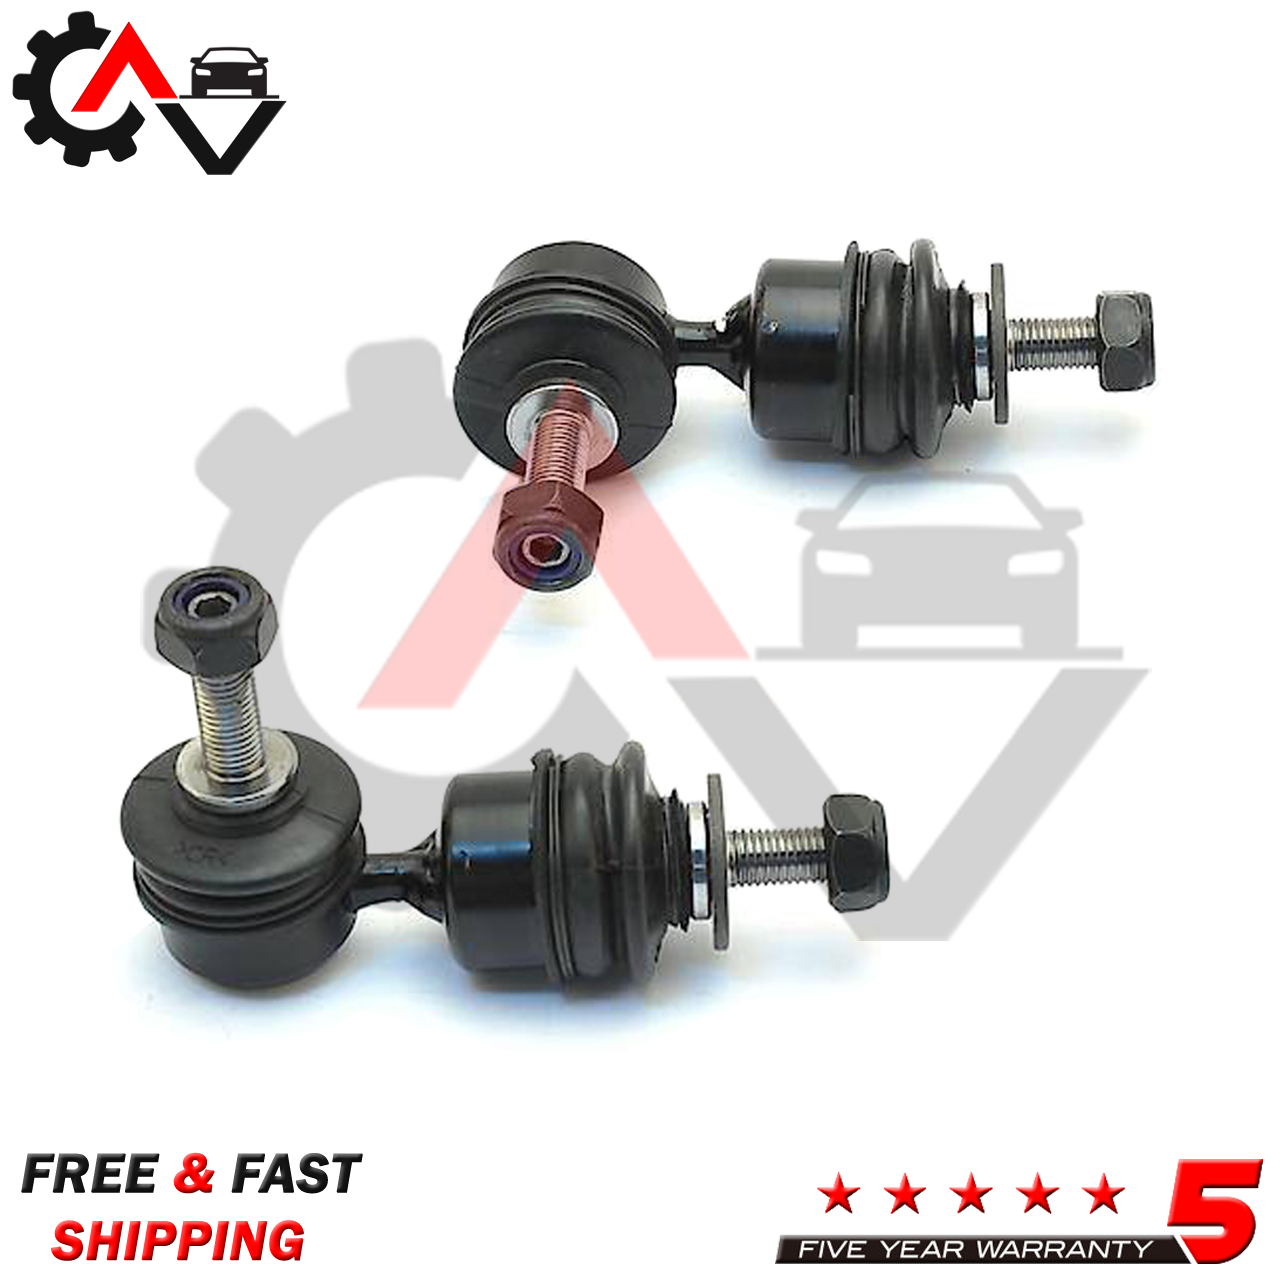 Package include One Sway Bar Link Only 2009 fits Mazda 6 Front Right Suspension Stabilizer Bar Link With Five Years Warranty